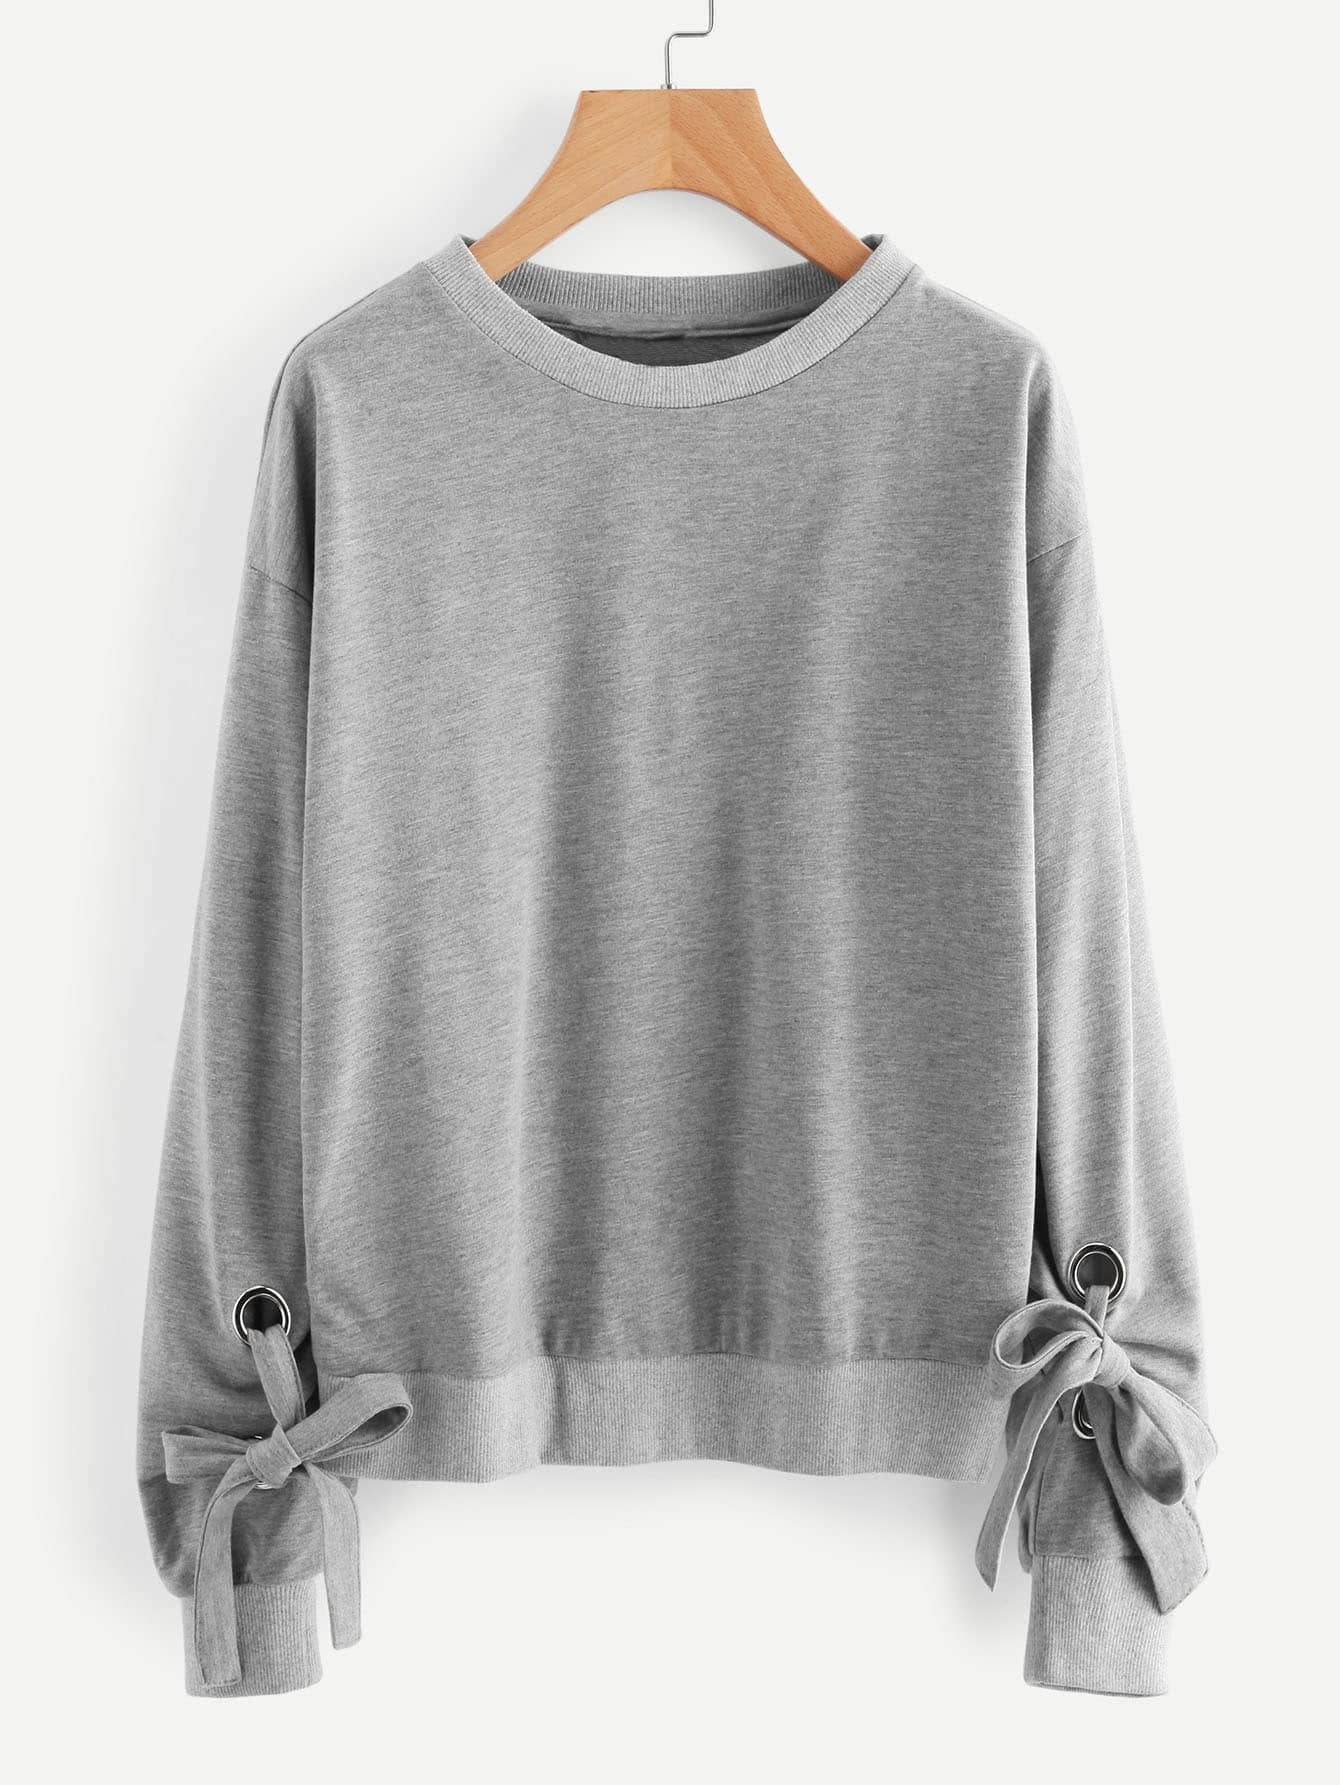 Drop Shoulder Tie Detail Marled Sweatshirt eyes print drop shoulder marled sweatshirt